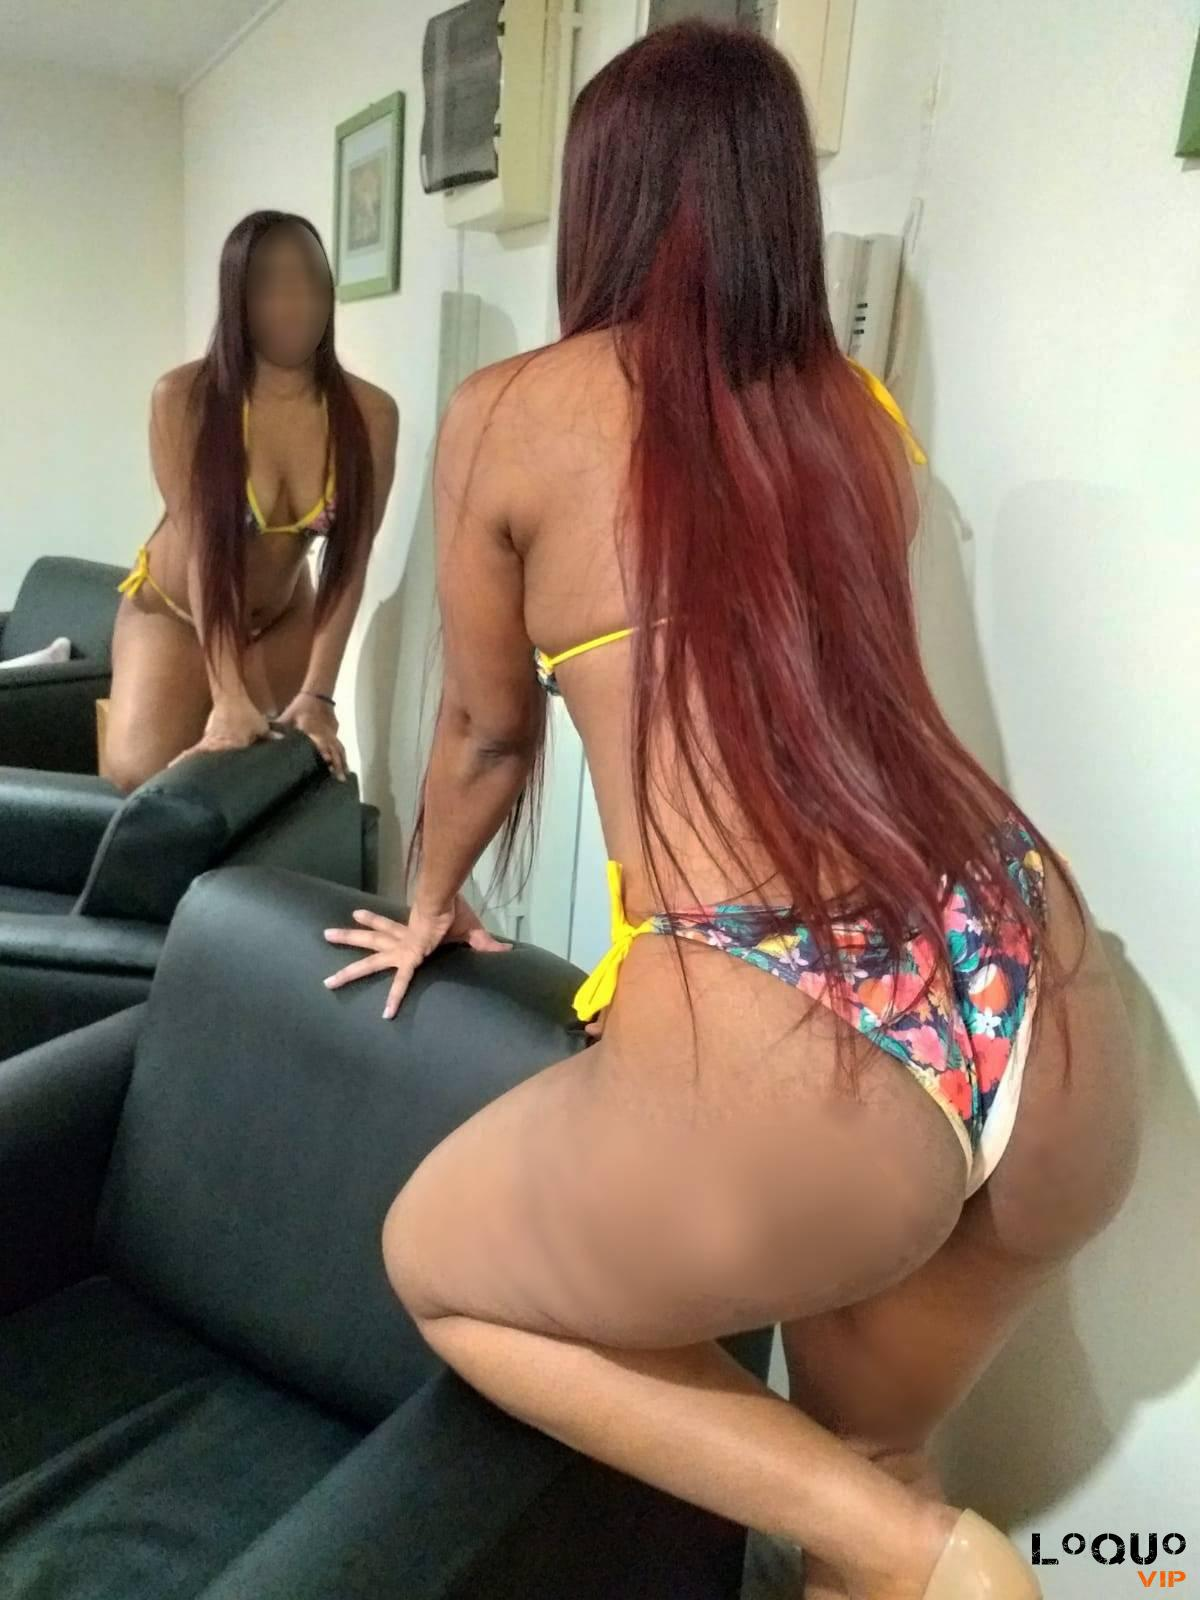 Putas Barcelona: SHANTAL.... PUTA DISPONIBLE 24 HRS